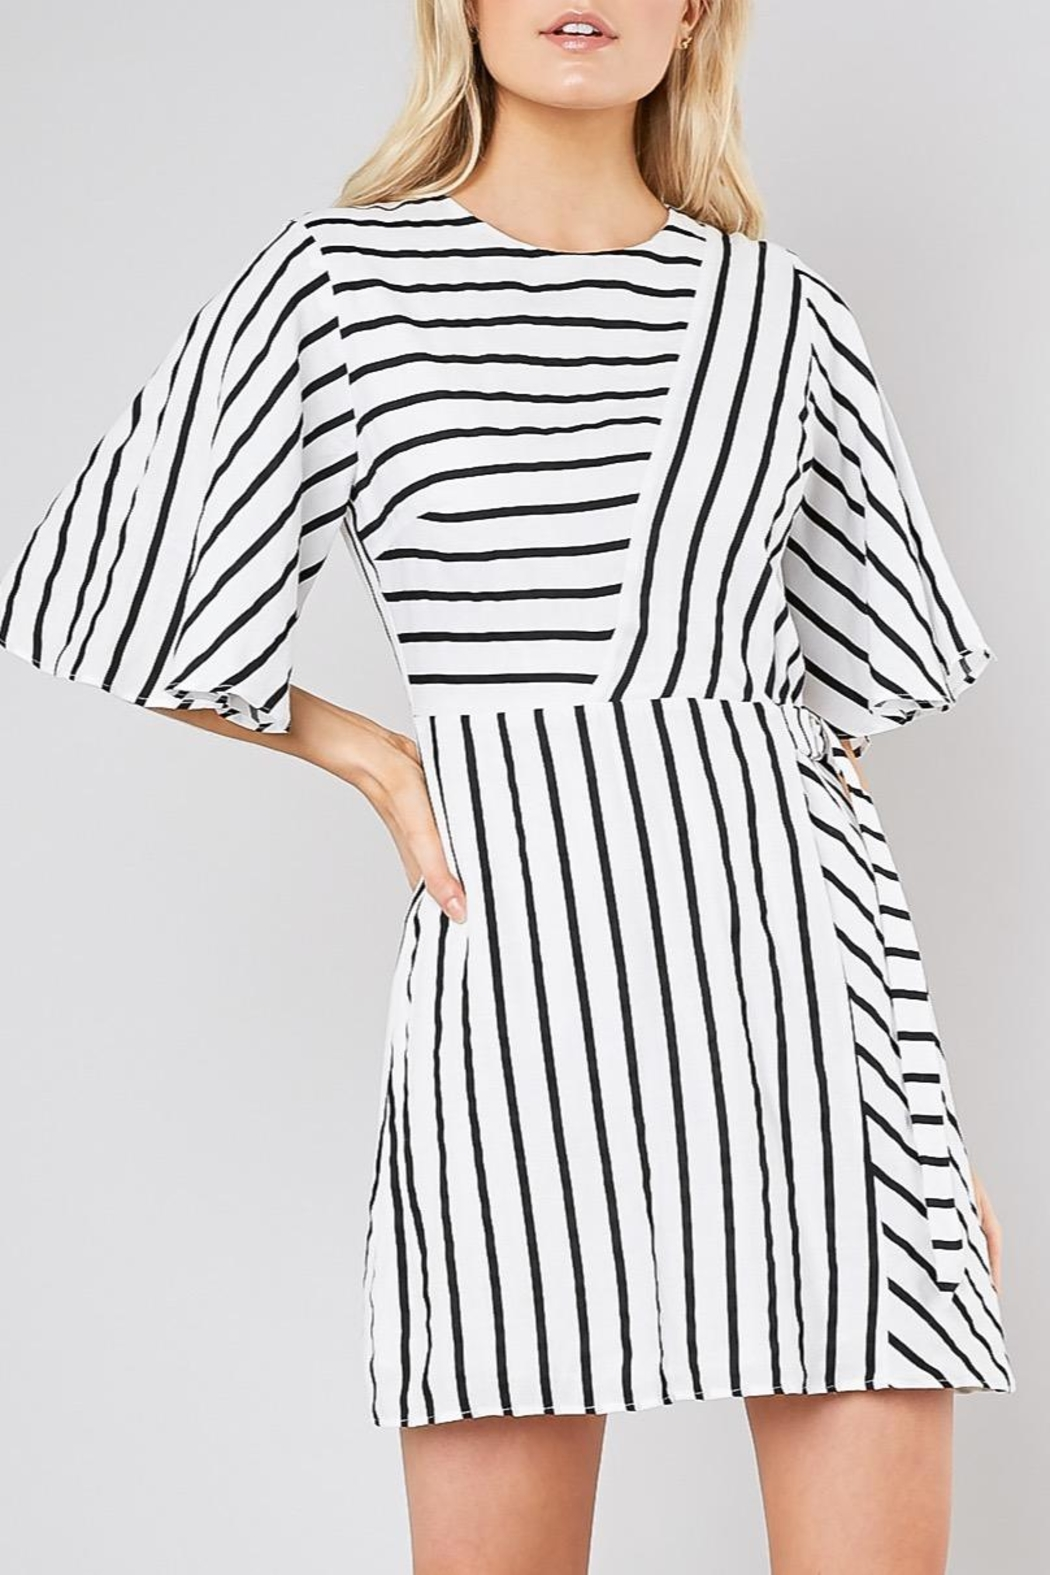 Do & Be Striped Belted Shift-Dress - Main Image